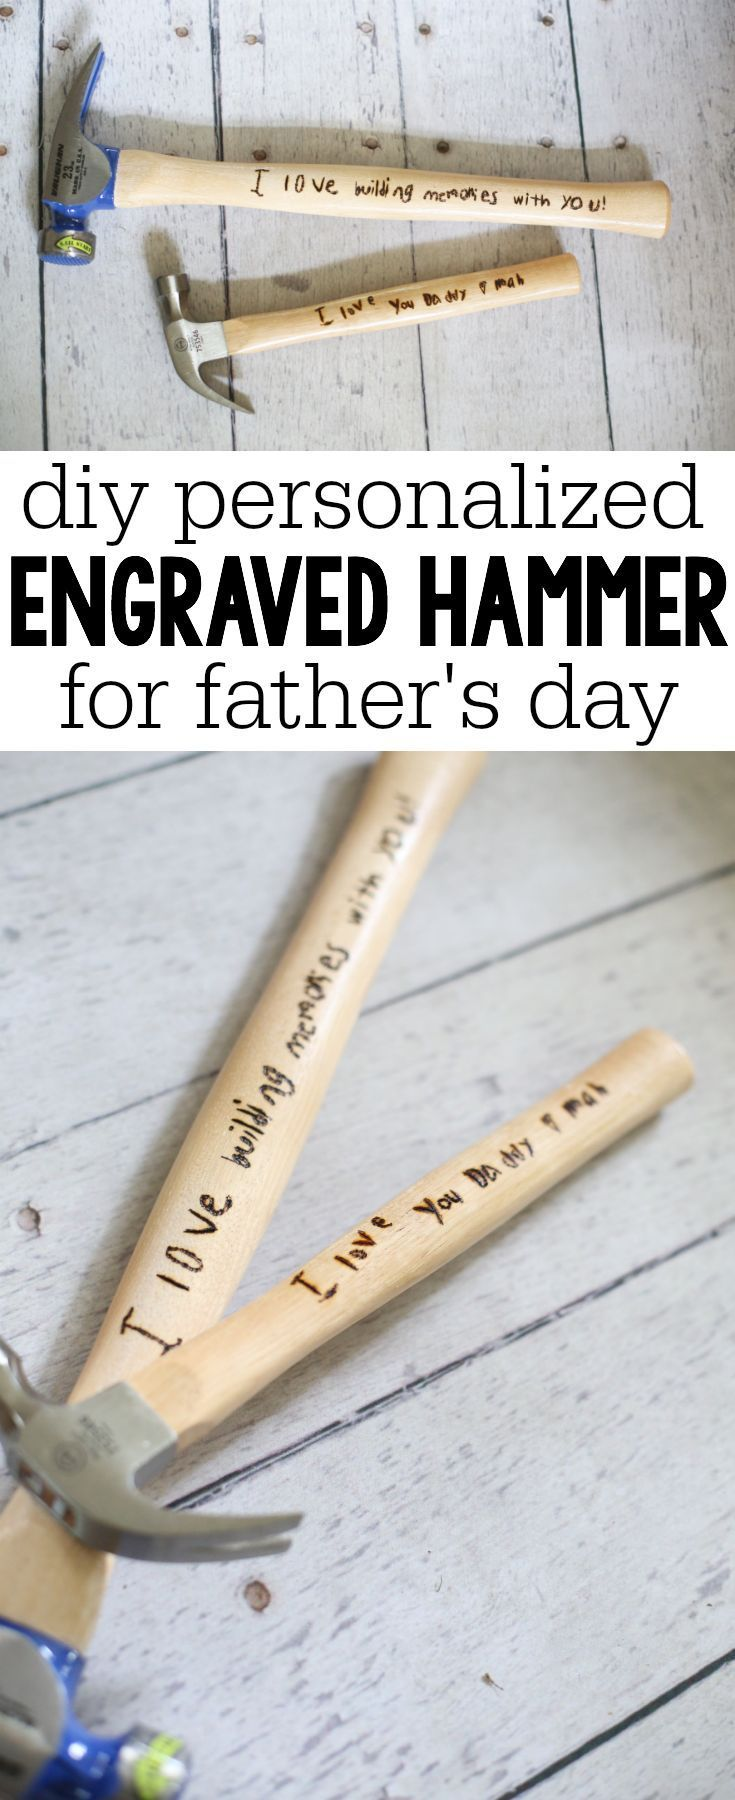 Such a sentimental (and practical) gift for dads that can be cherished for years to come.  Buying the hammer and wood burning tool are cheaper than buying a pre-engraved one!